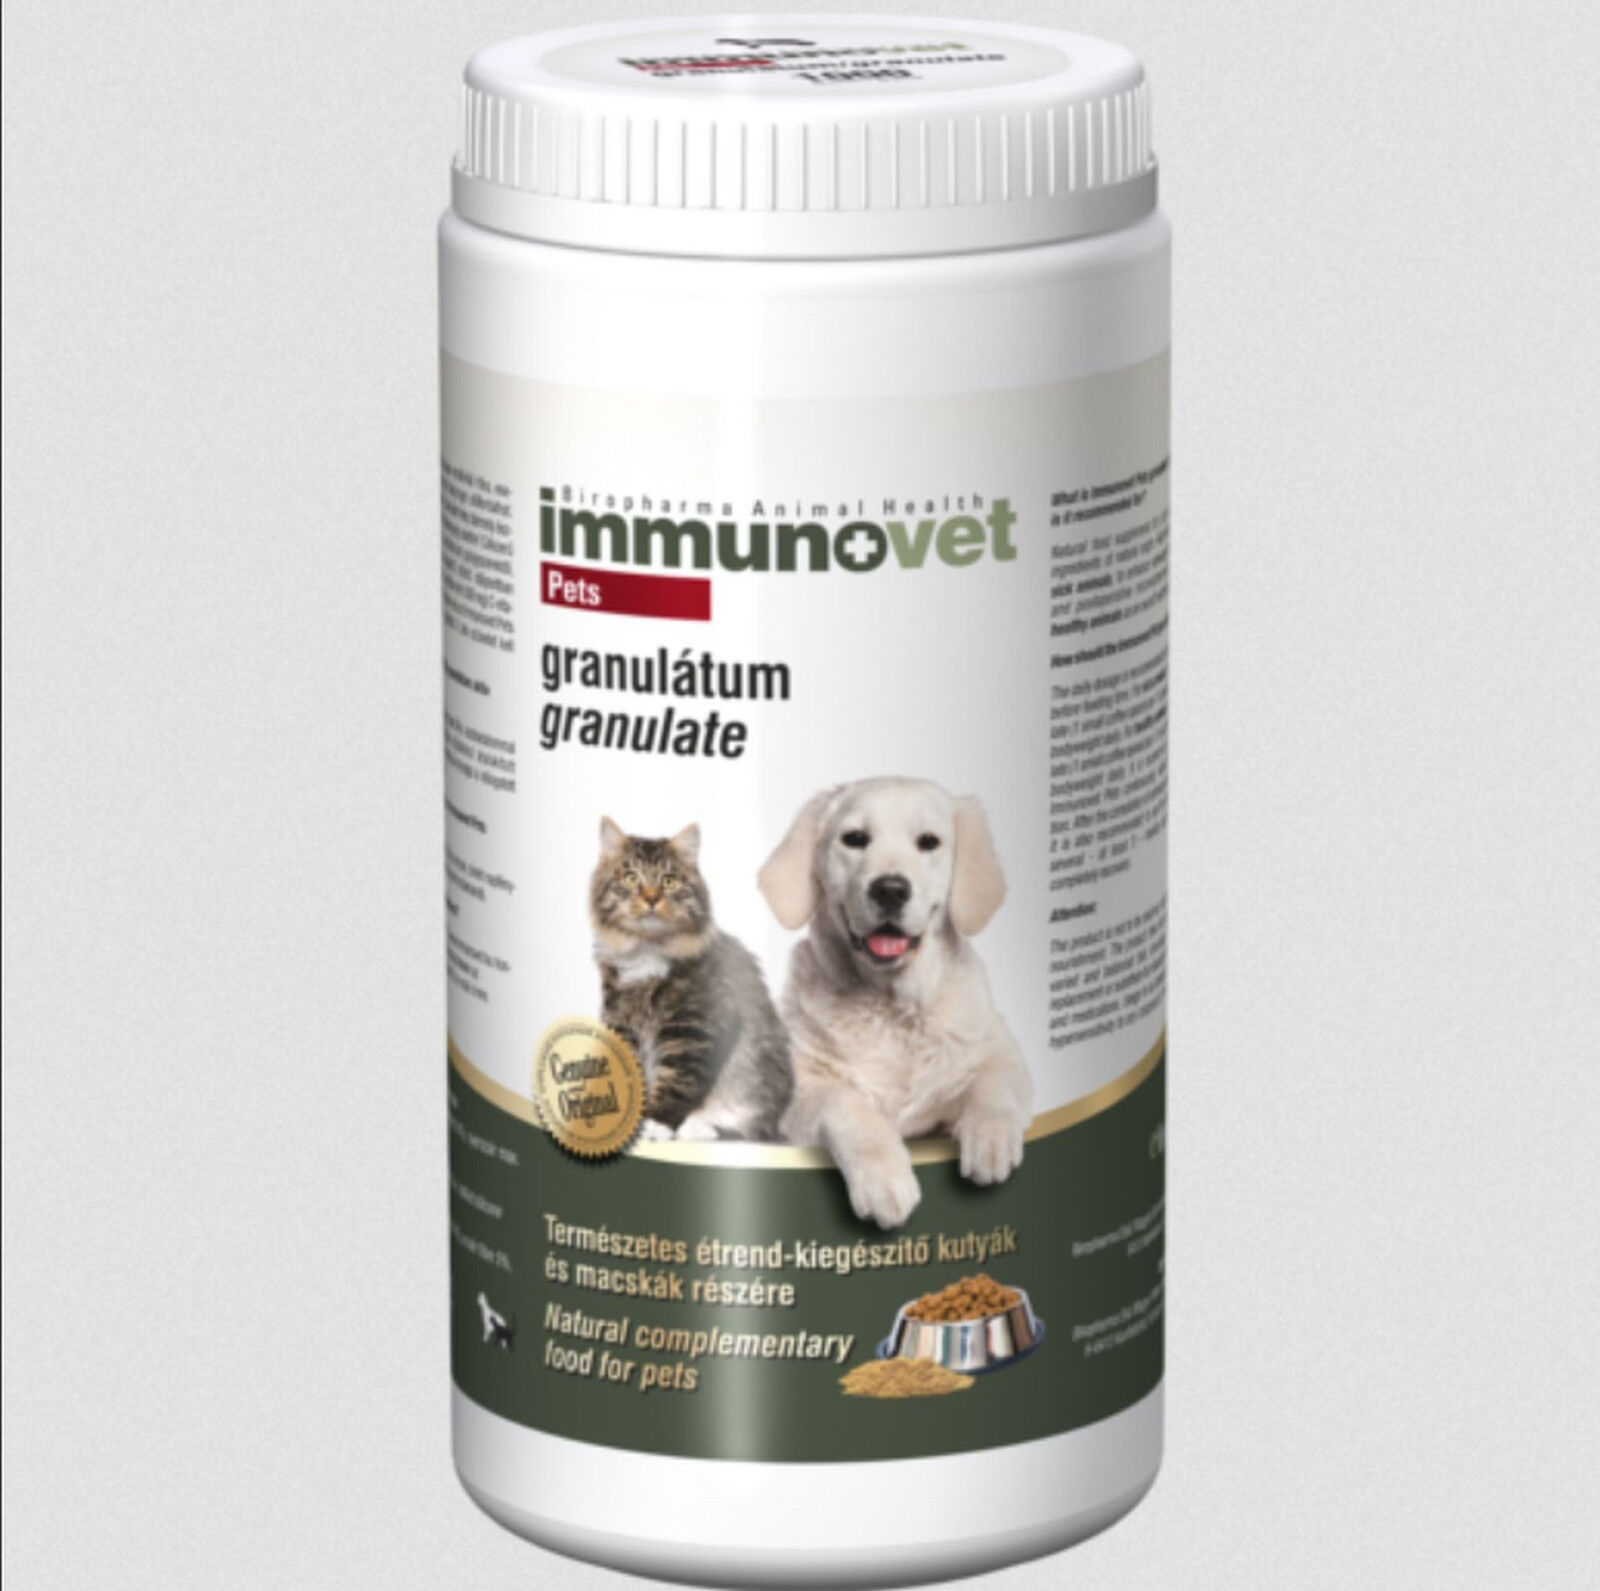 IMMUNOVET Powder for Cats and Dogs Granulate 1 kg - Fermented Wheat Germ Extract